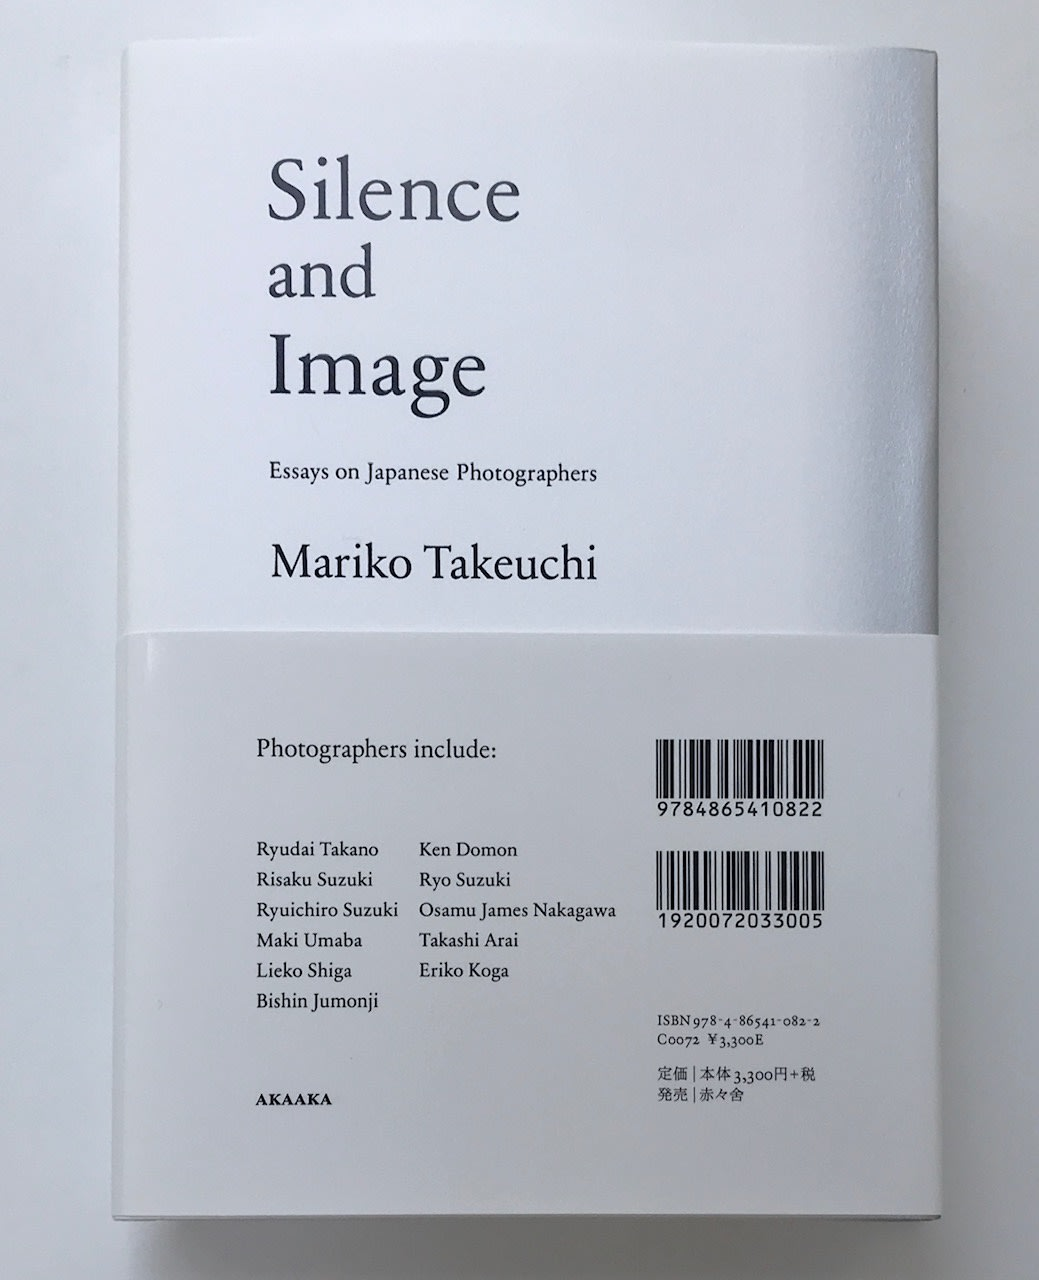 Silence and Image - Mariko Takeuchi